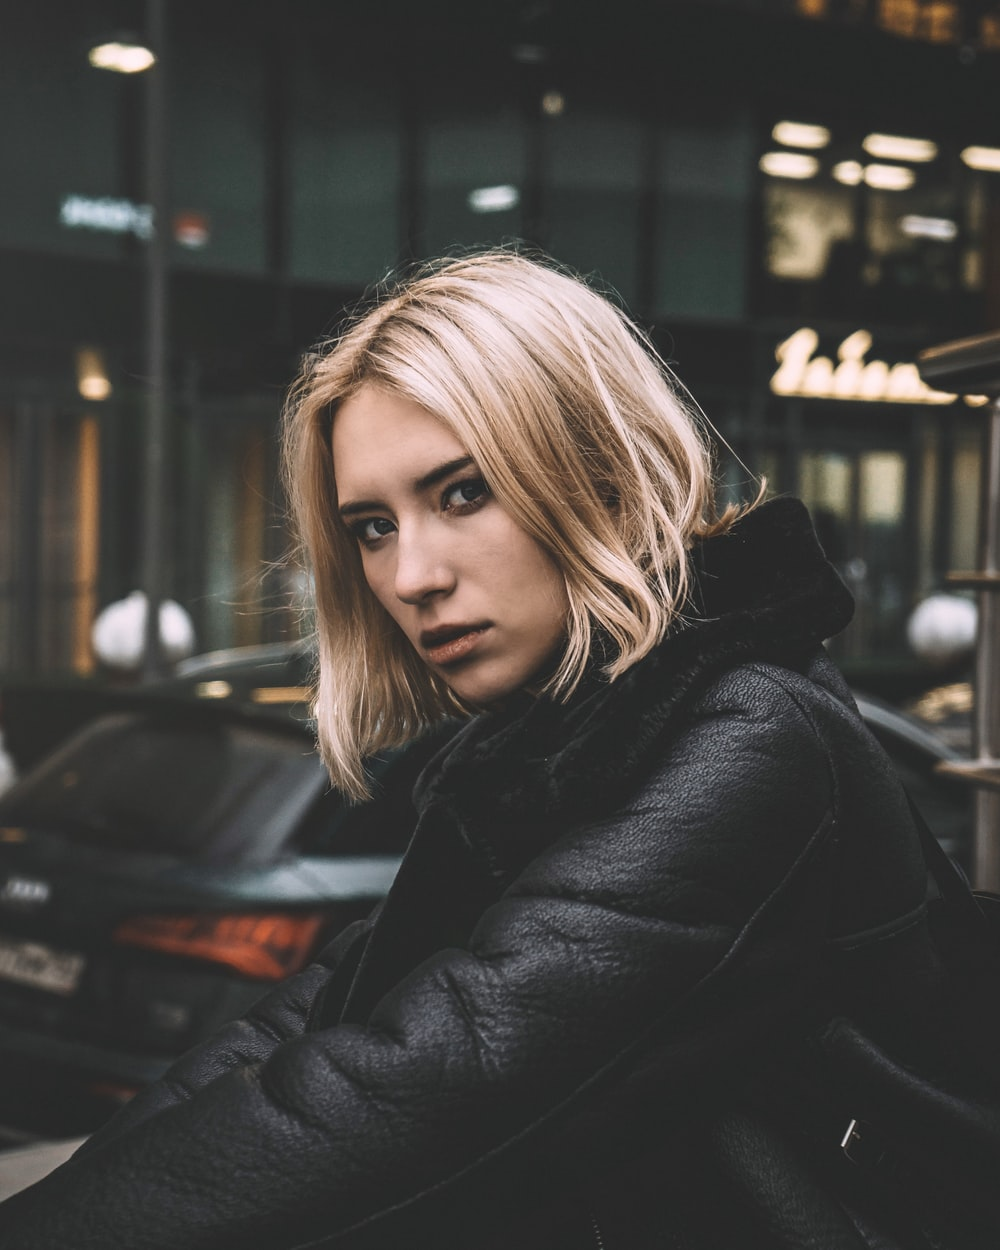 woman in black leather jacket standing near black car during night time